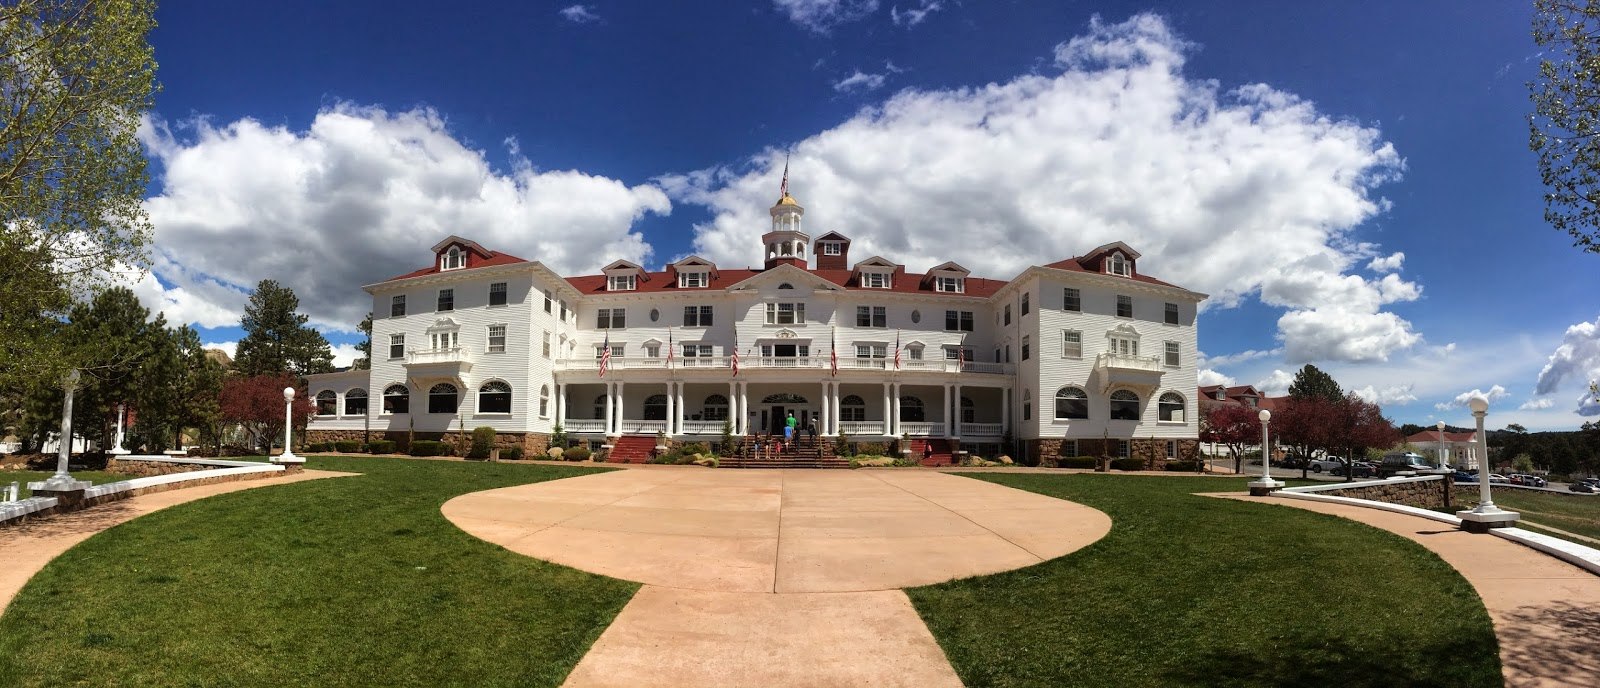 The Stanley Hotel in Estes Park Colorado by Jessica Mack aka SweetDivergence